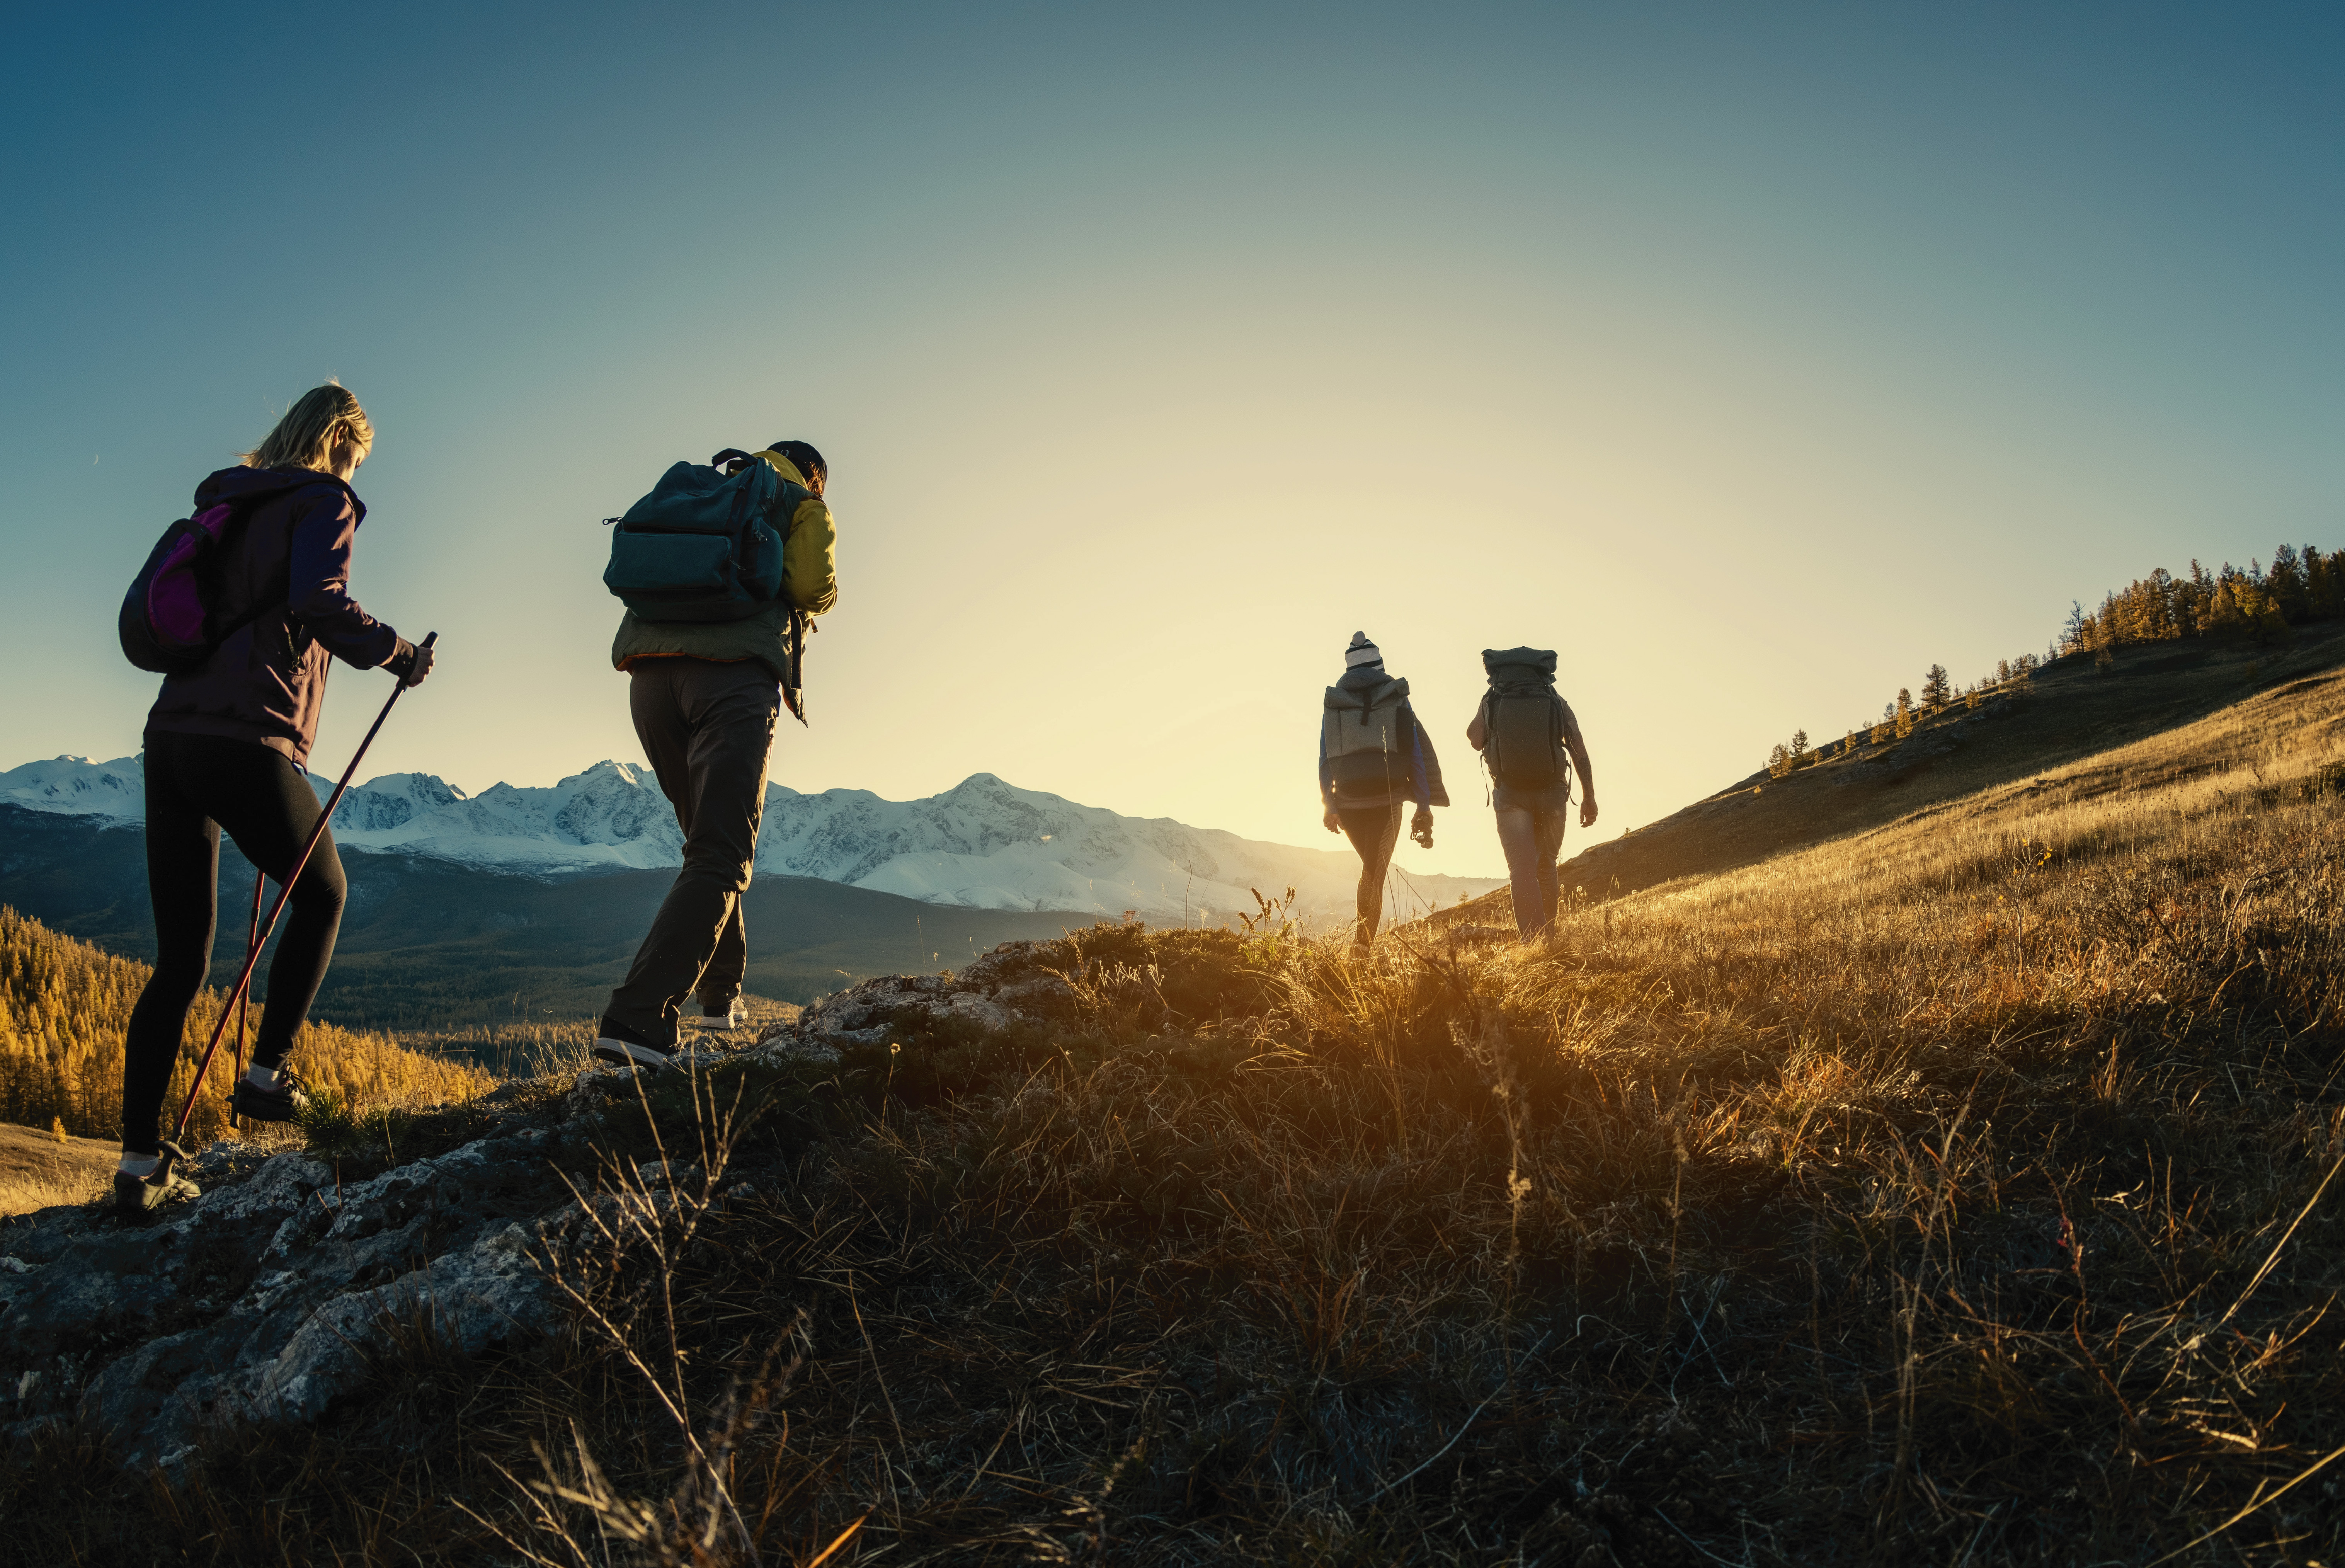 a group of people hiking in the mountains of montana